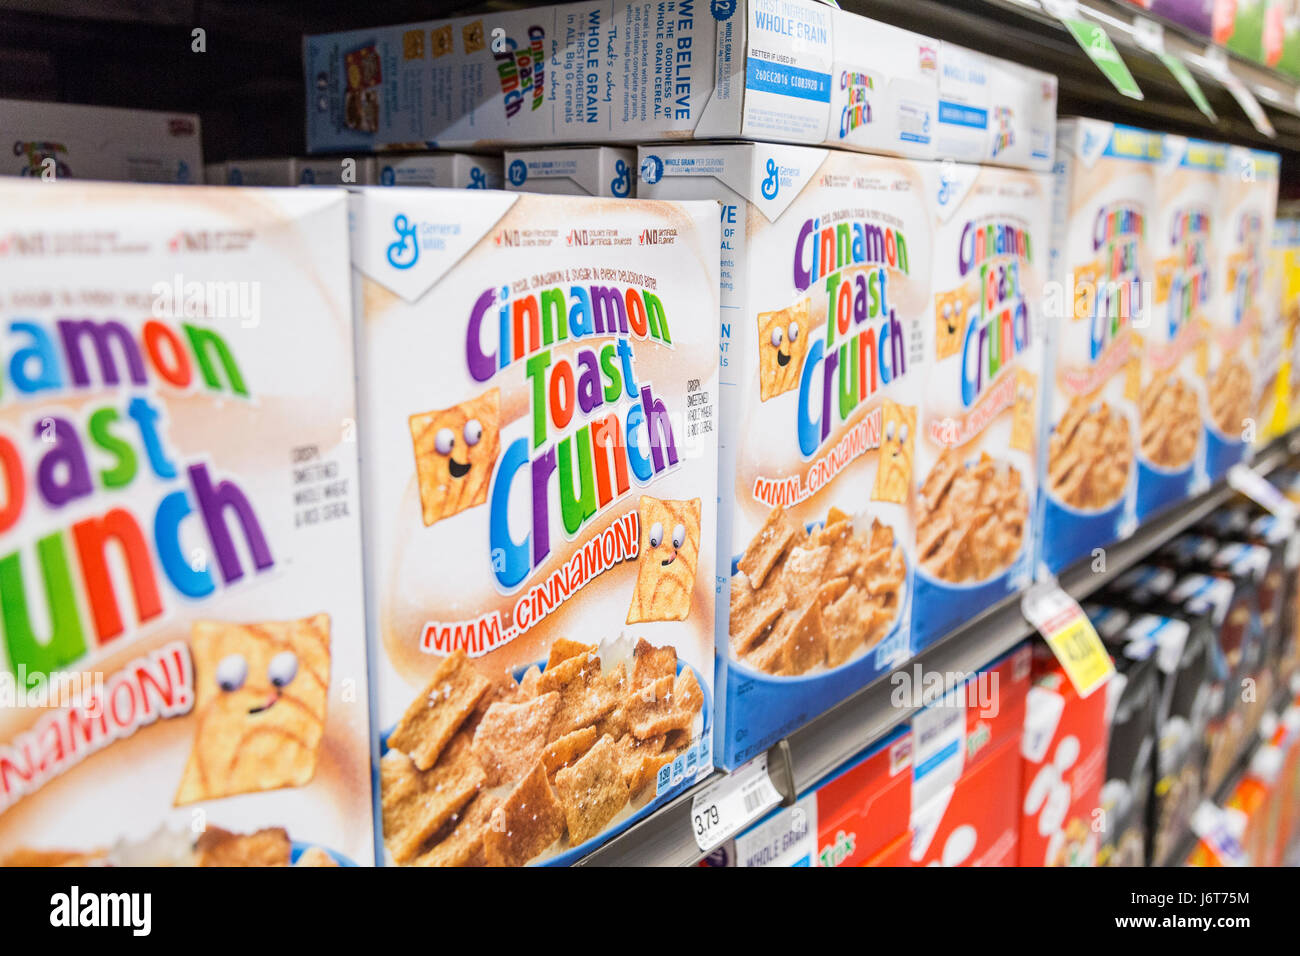 boxes of Cinnamon Toast Crunch cereal on shelves at a grocery store - Stock Image